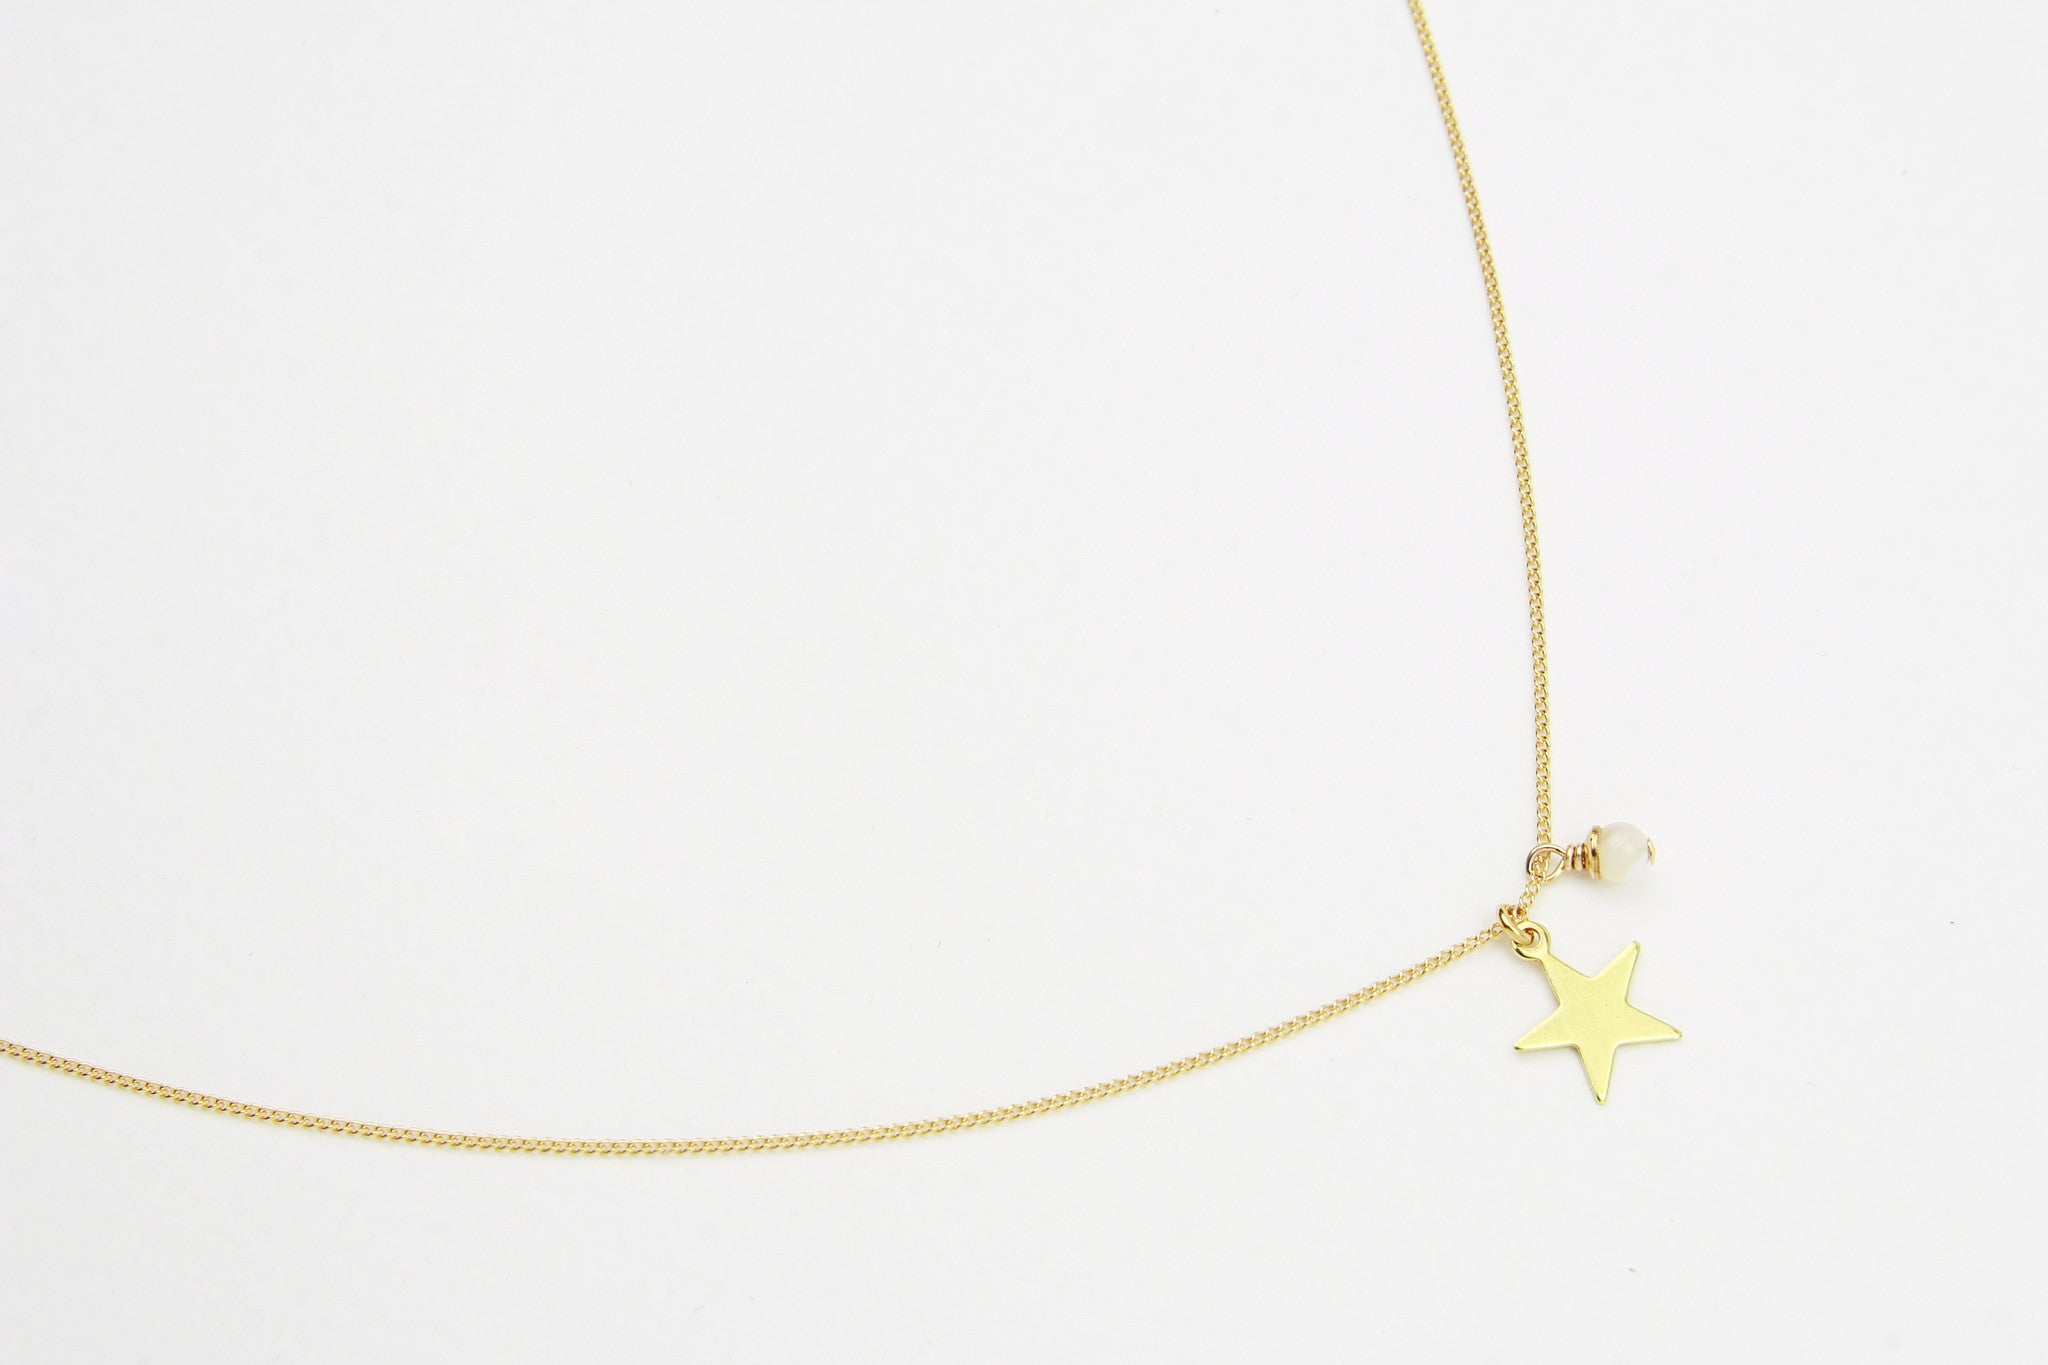 Kette PLAIN STAR 925 Sterling Silber vergoldet